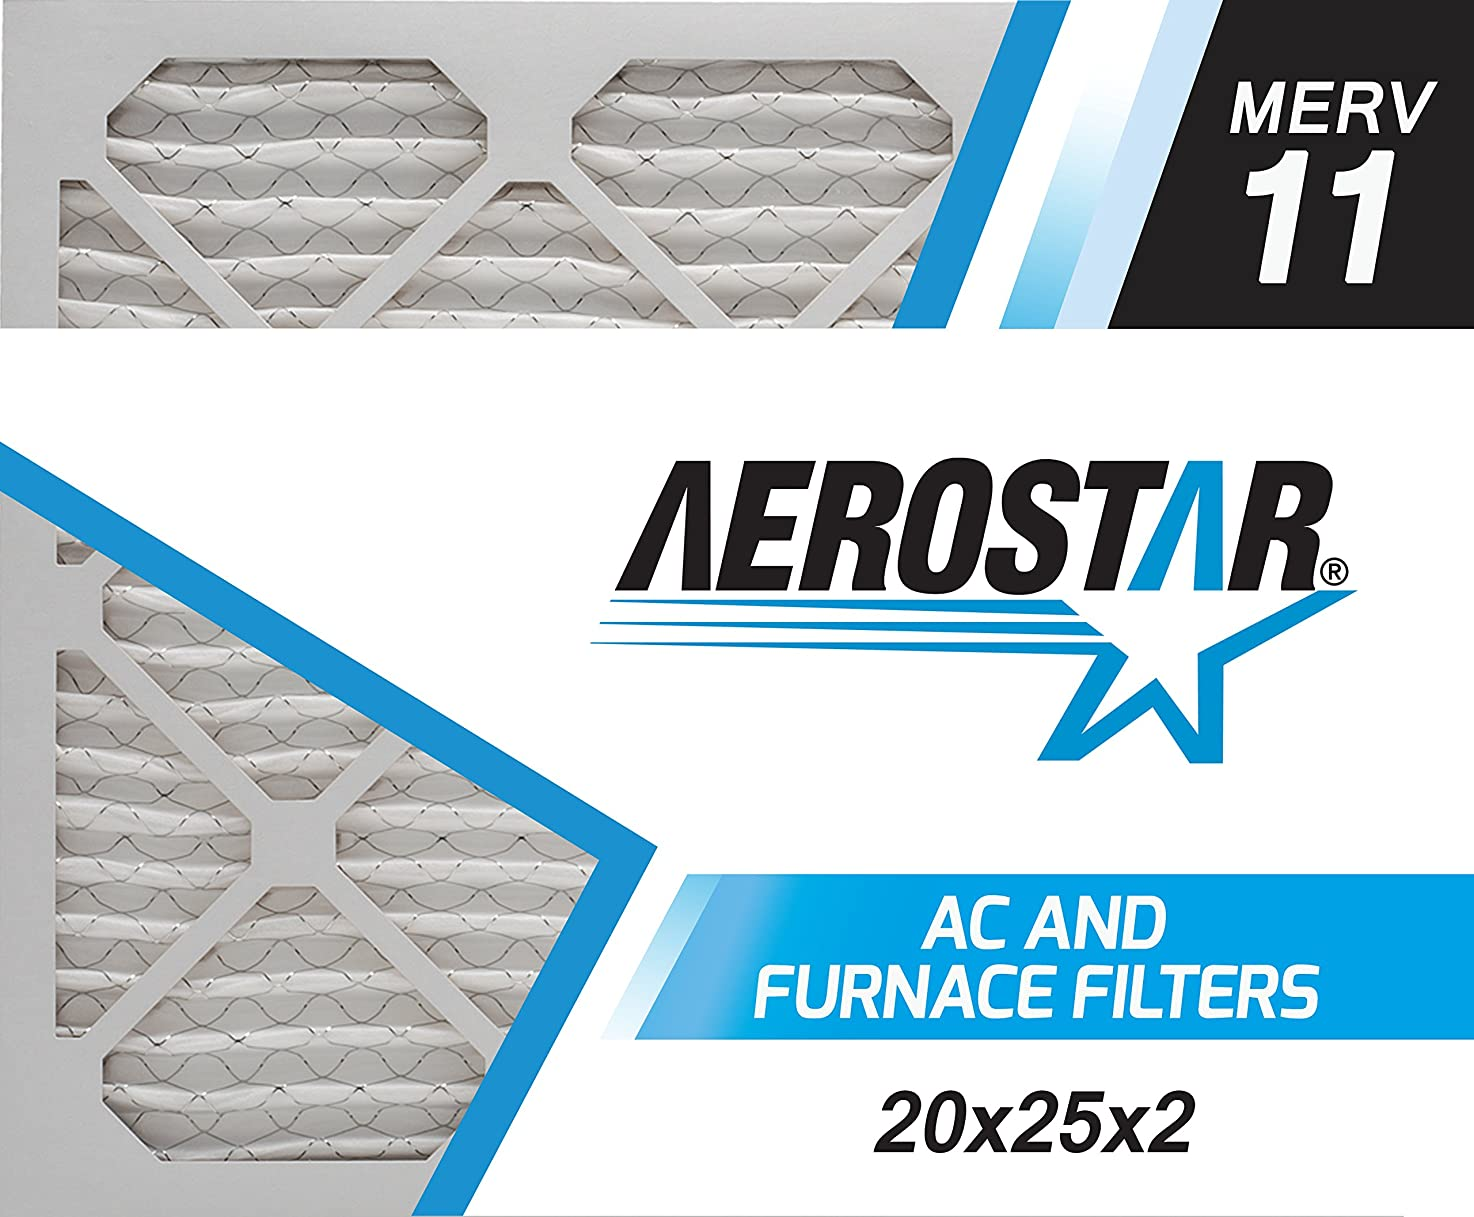 Aerostar 20x25x2 MERV 11, Pleated Air Filter, 20x25x2, Box of 6, Made in The USA